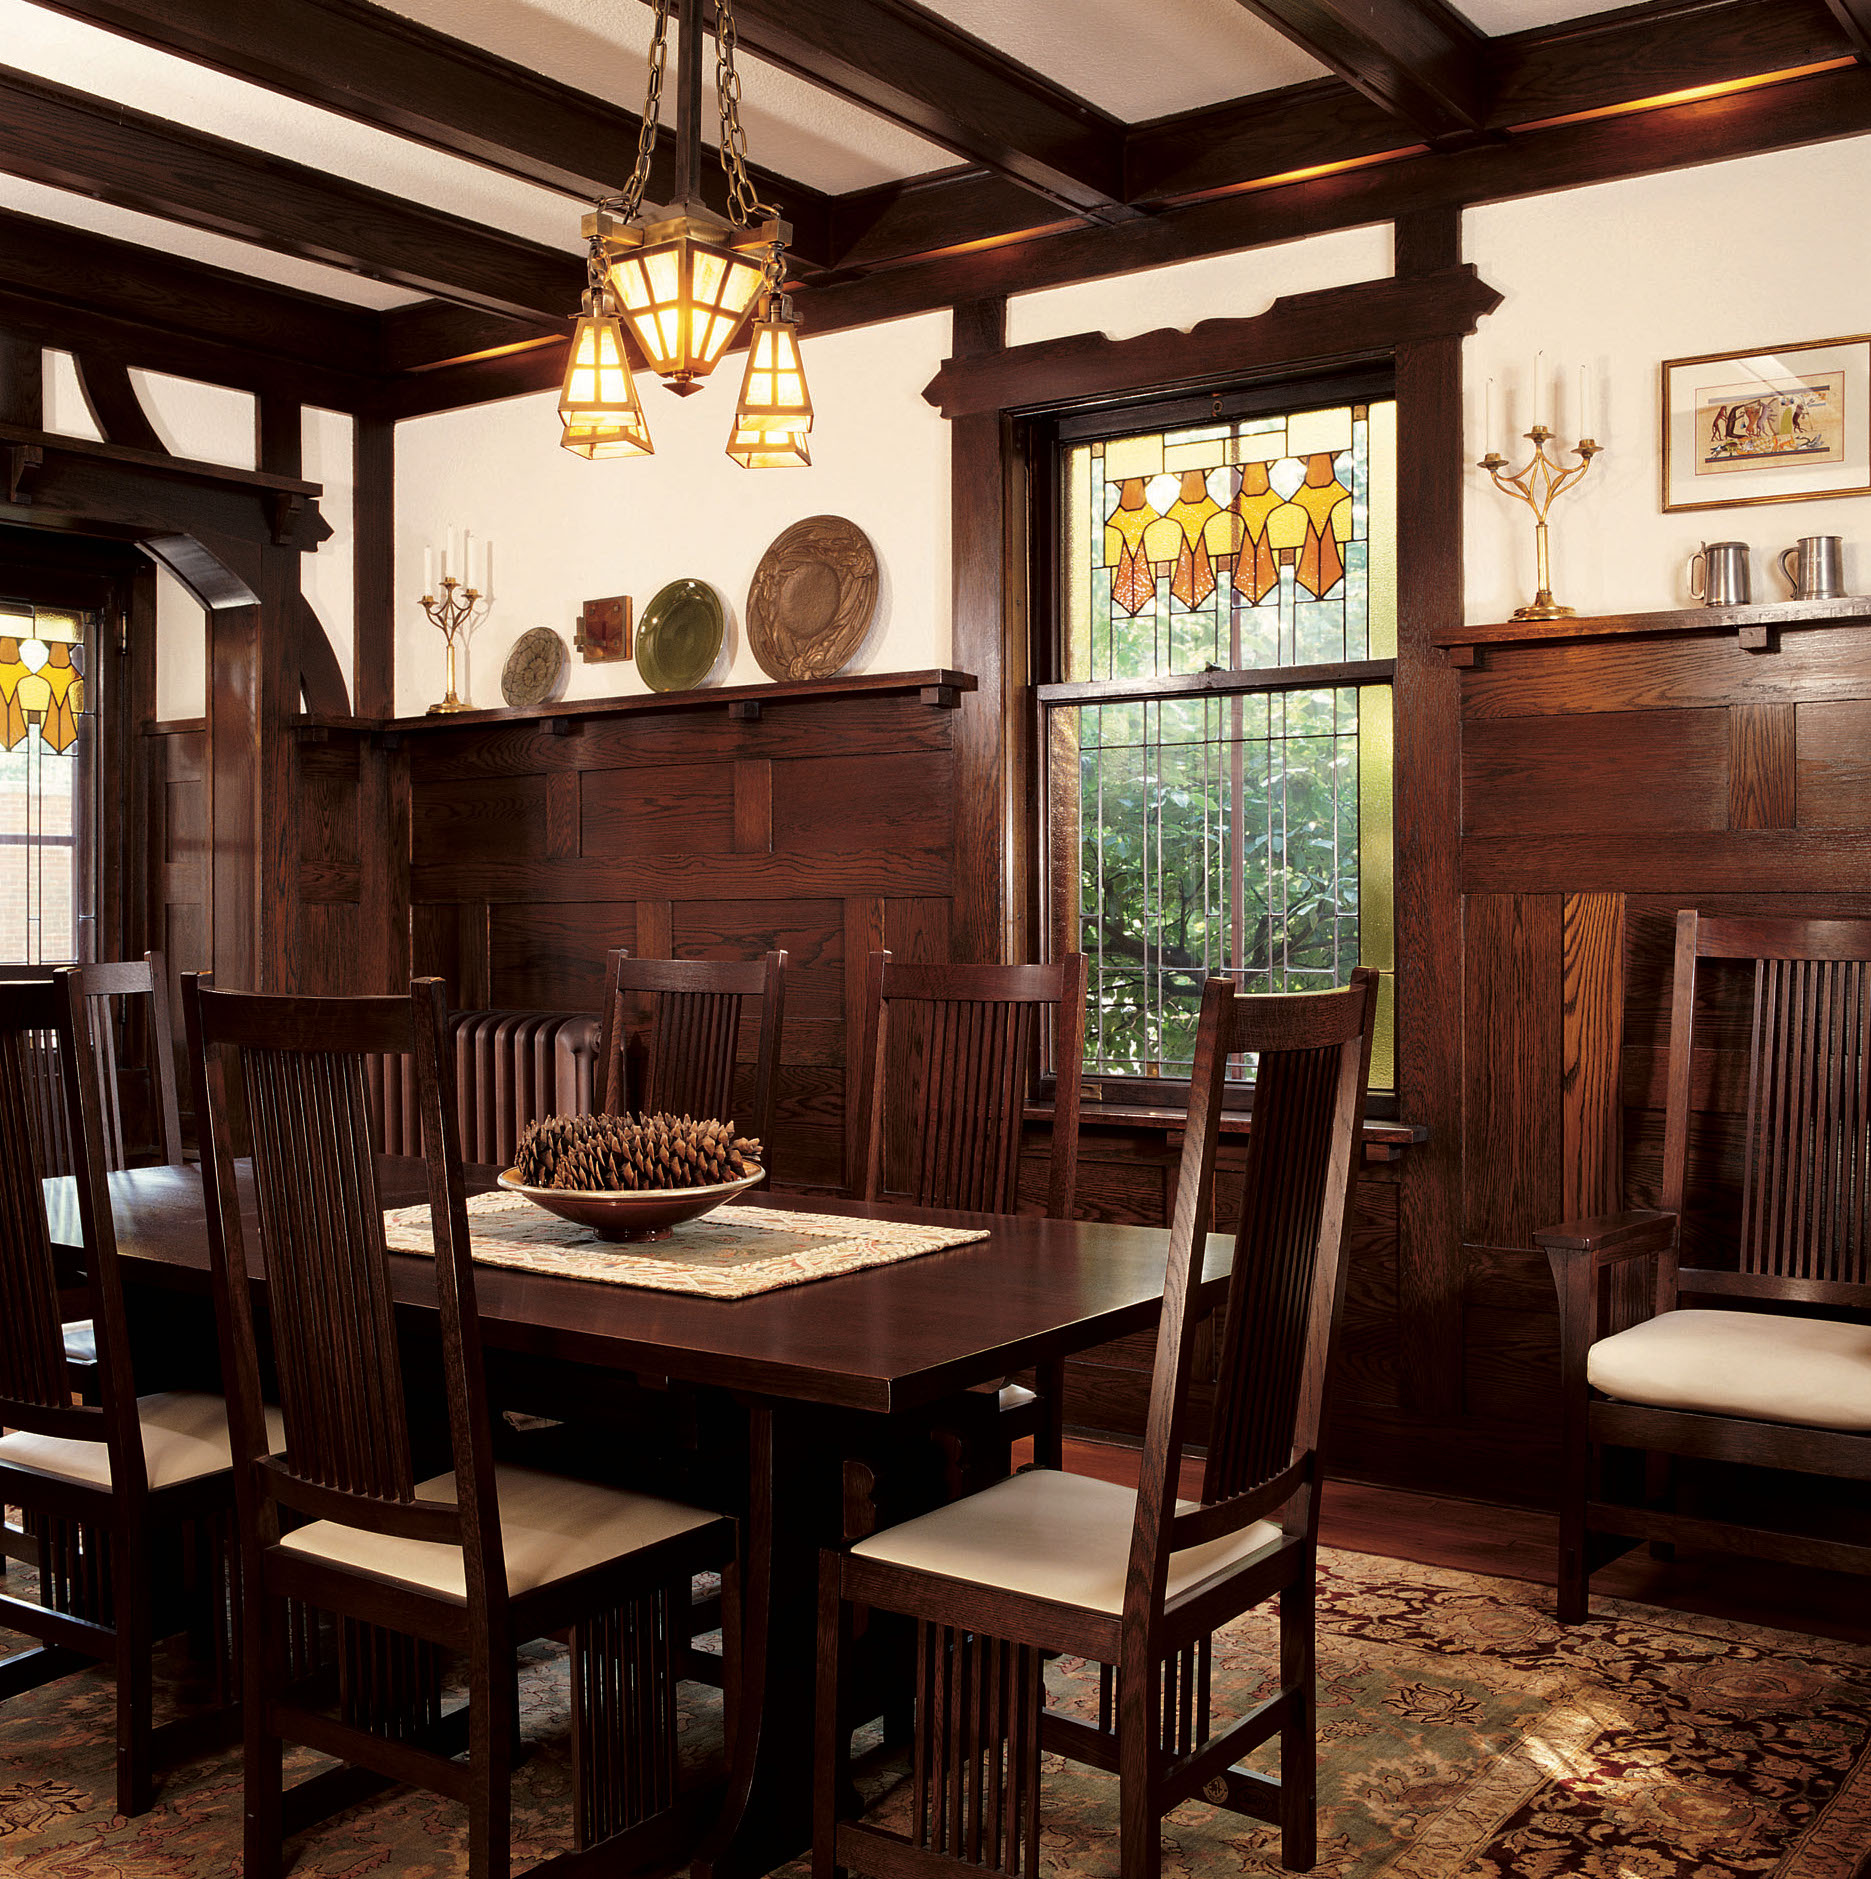 Delightful The Tudor Revival Style